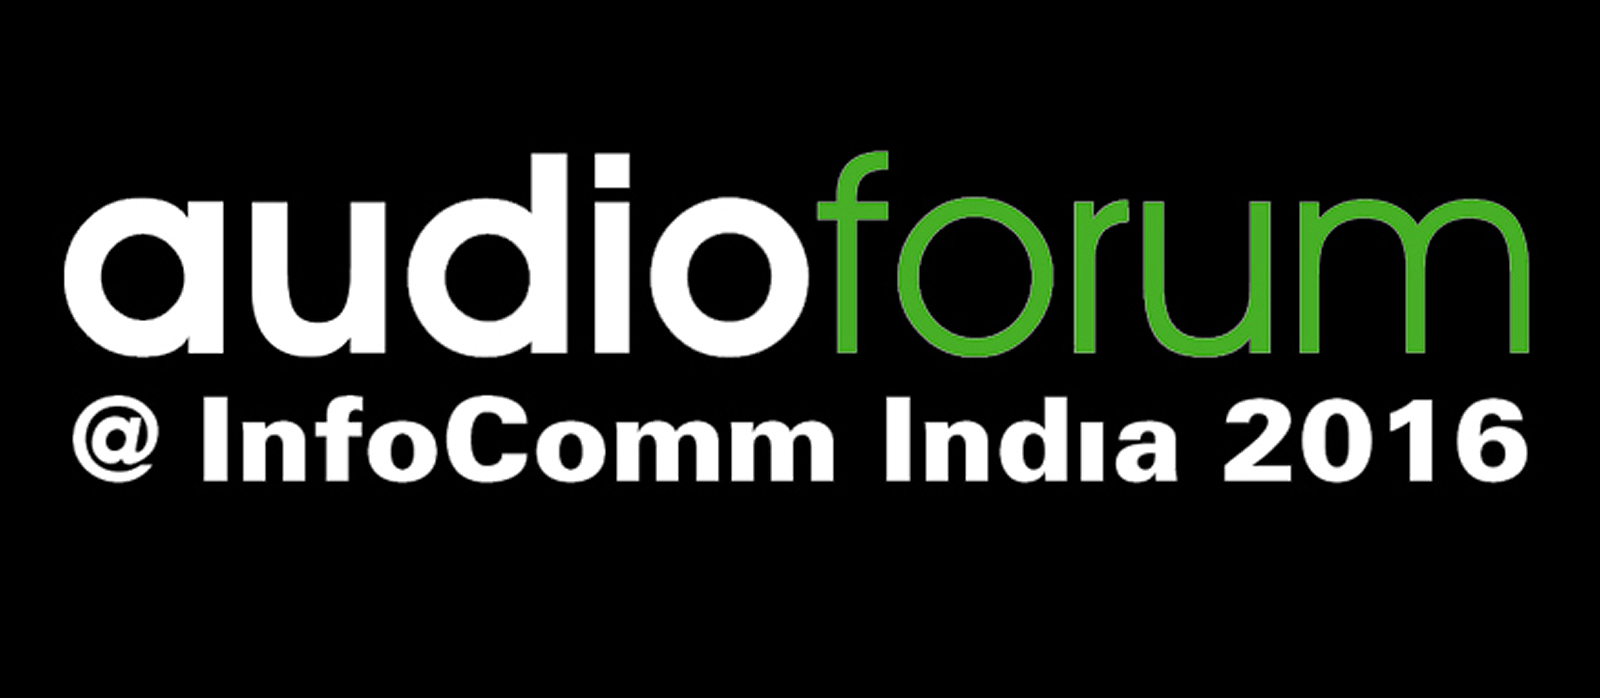 Powersoft offers integration at InfoComm India